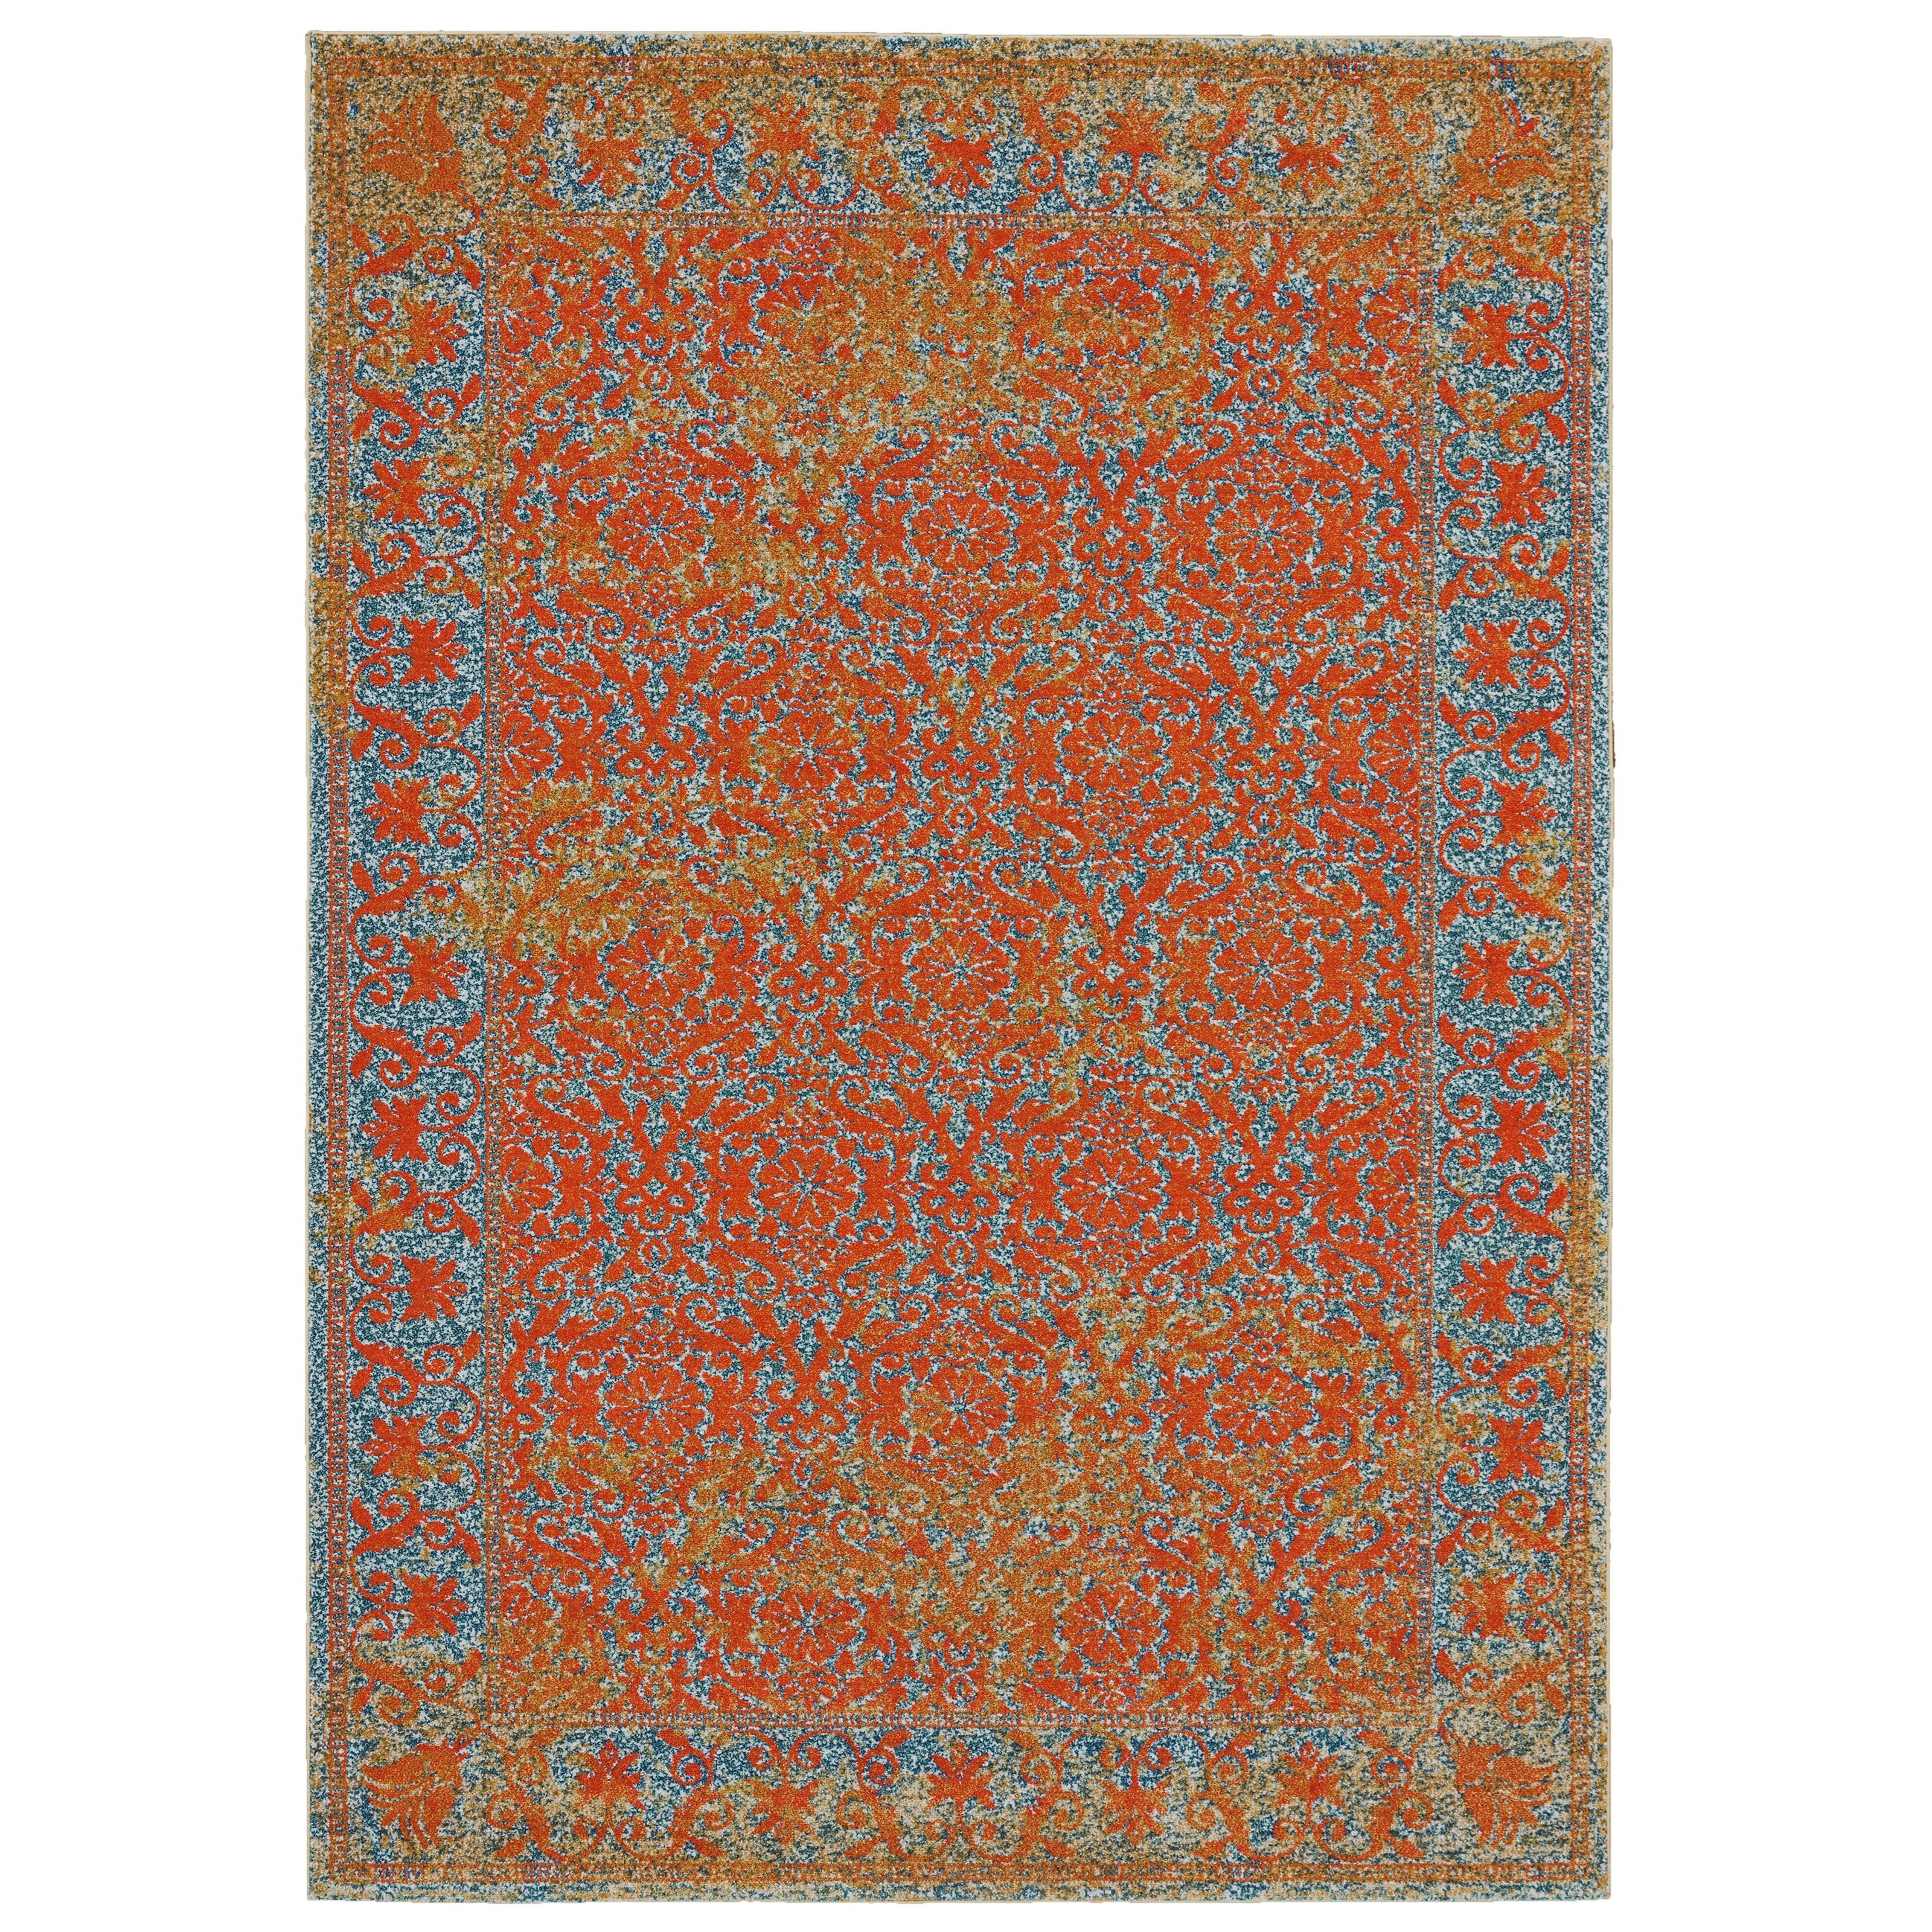 Archean Cantaloupe 8' X 11' Area Rug by Feizy Rugs at Sprintz Furniture